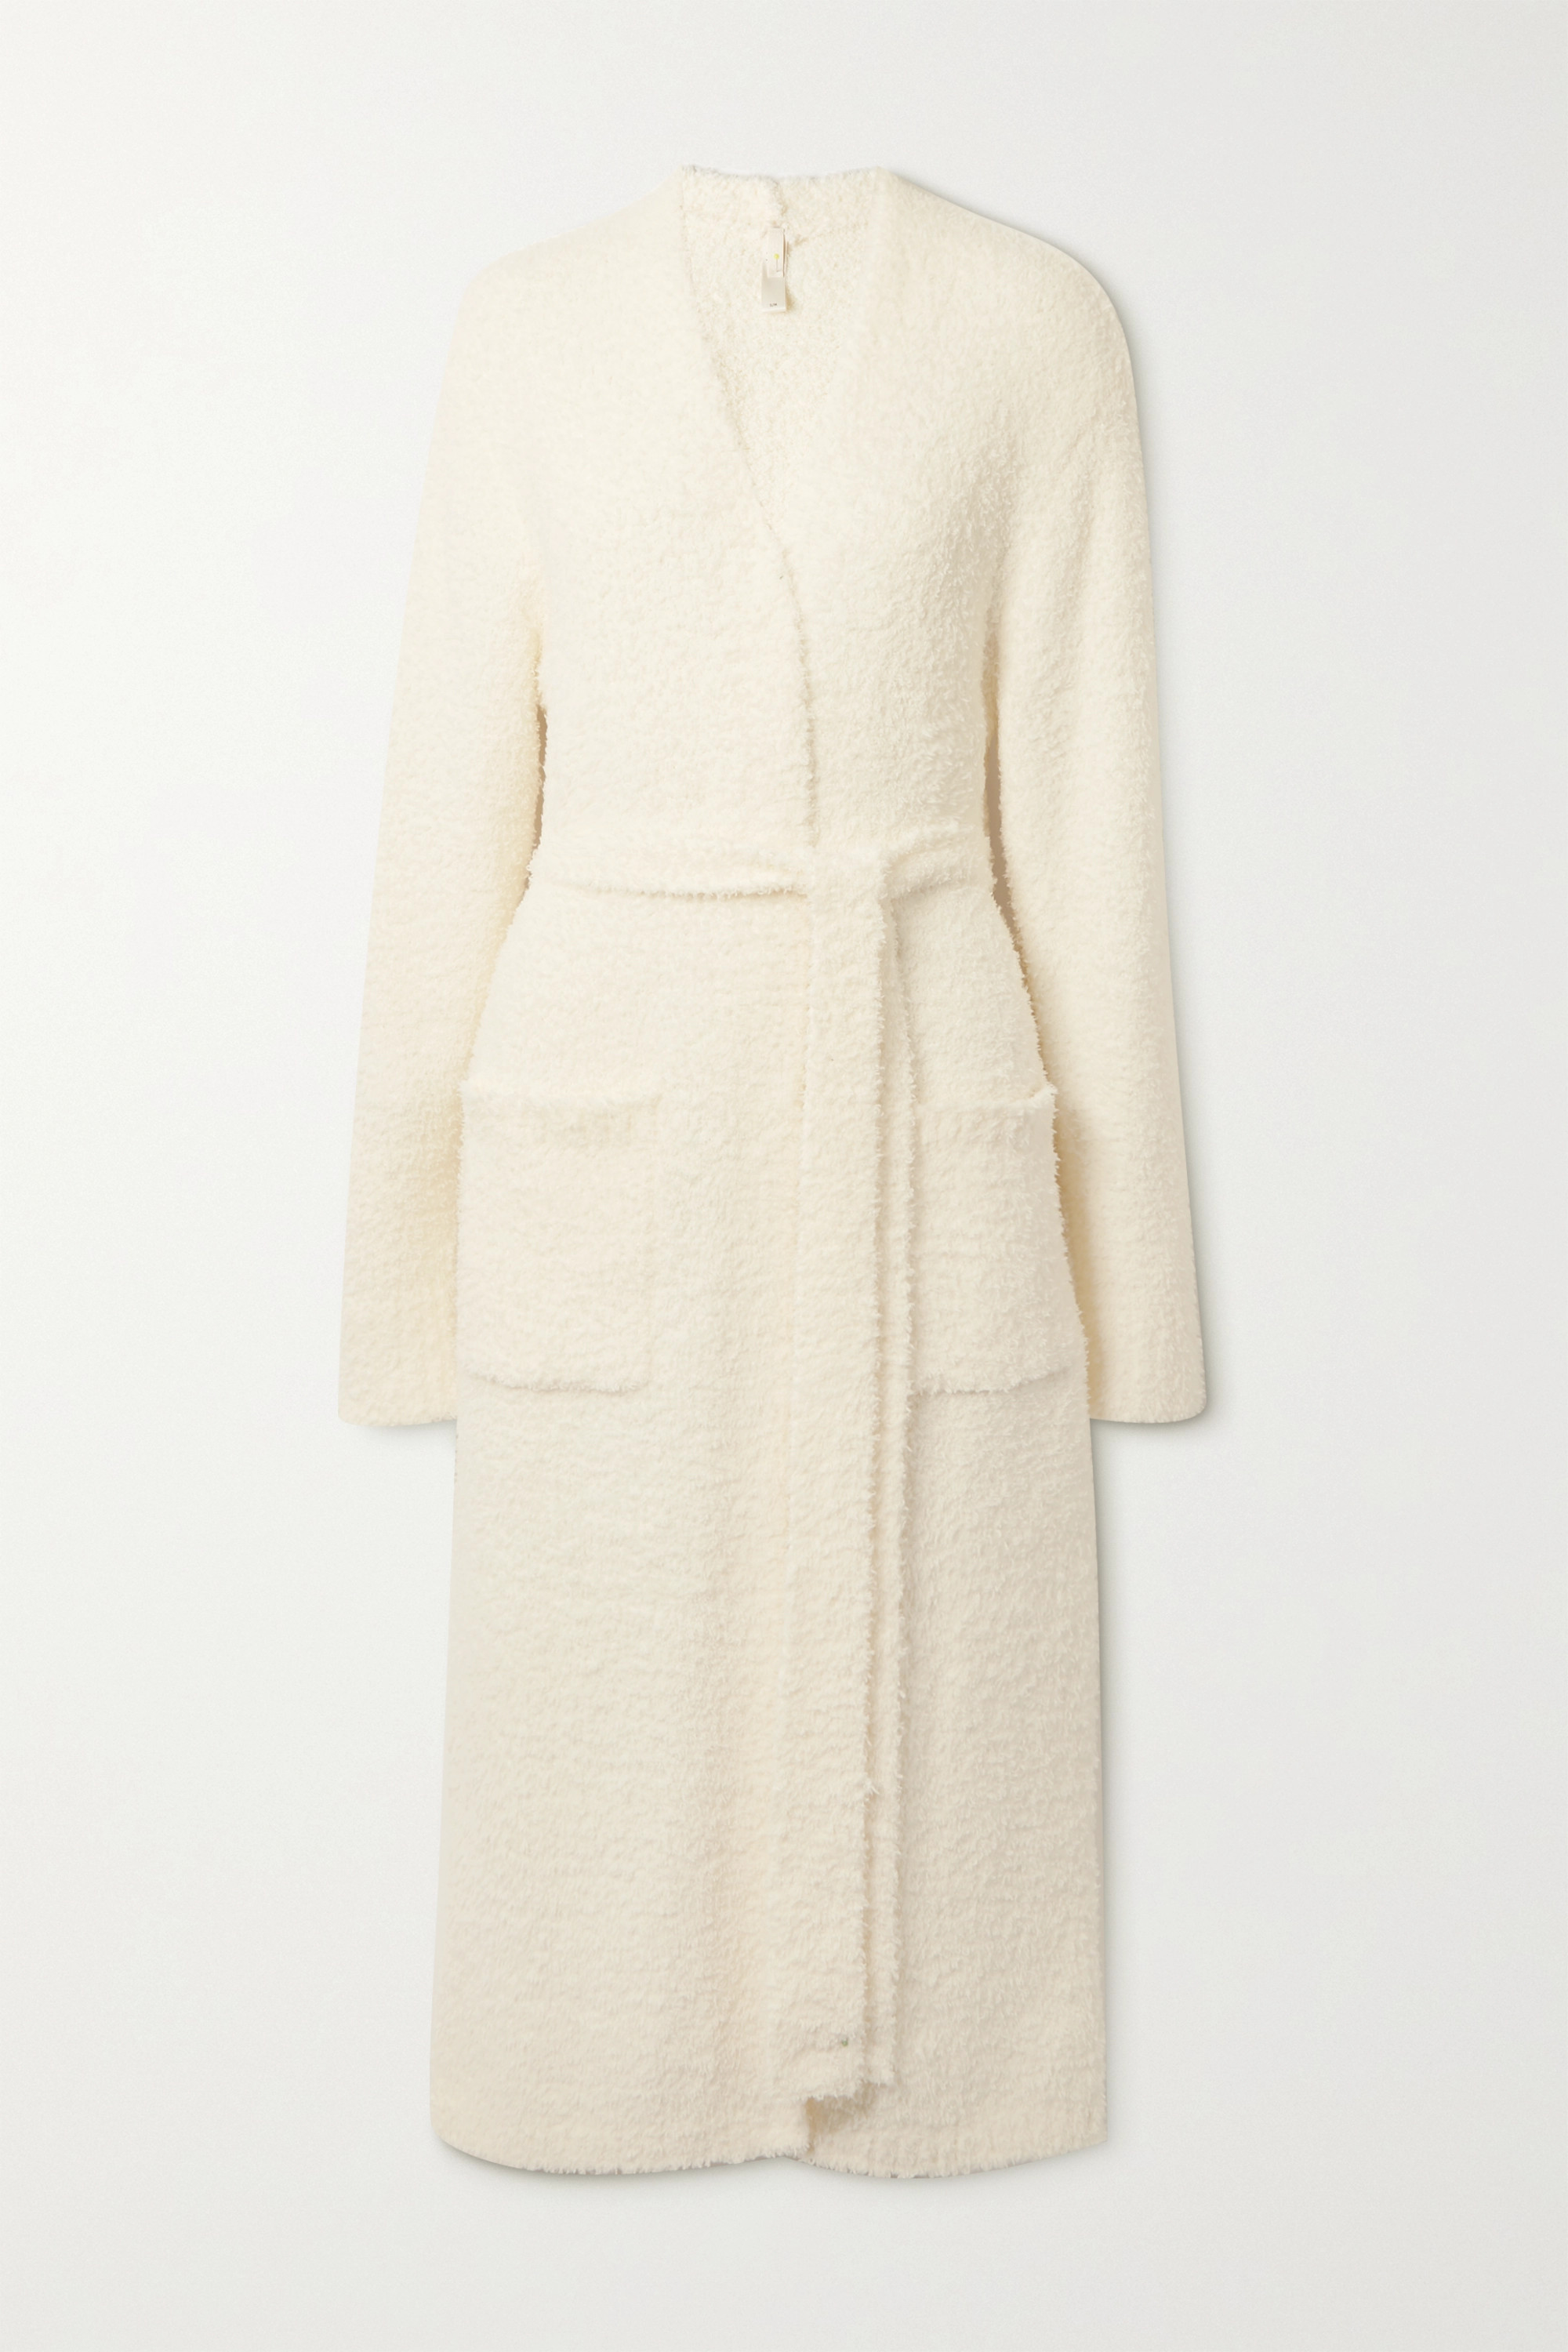 SKIMS Cozy Knit bouclé robe - Bone